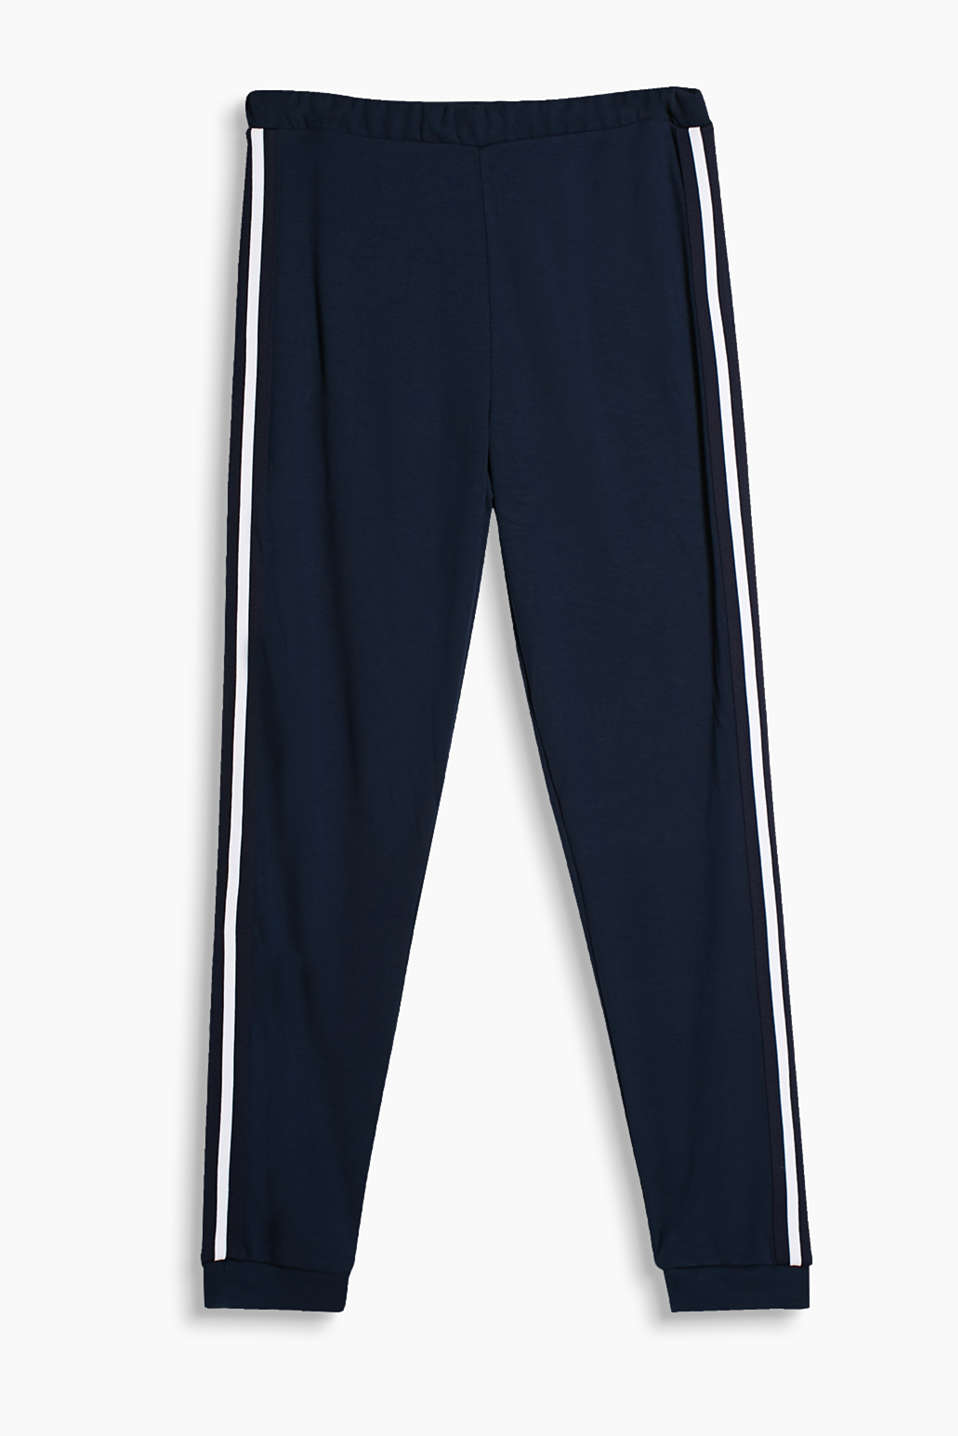 Stylish jersey tracksuit bottoms with tuxedo stripes and an elasticated waistband